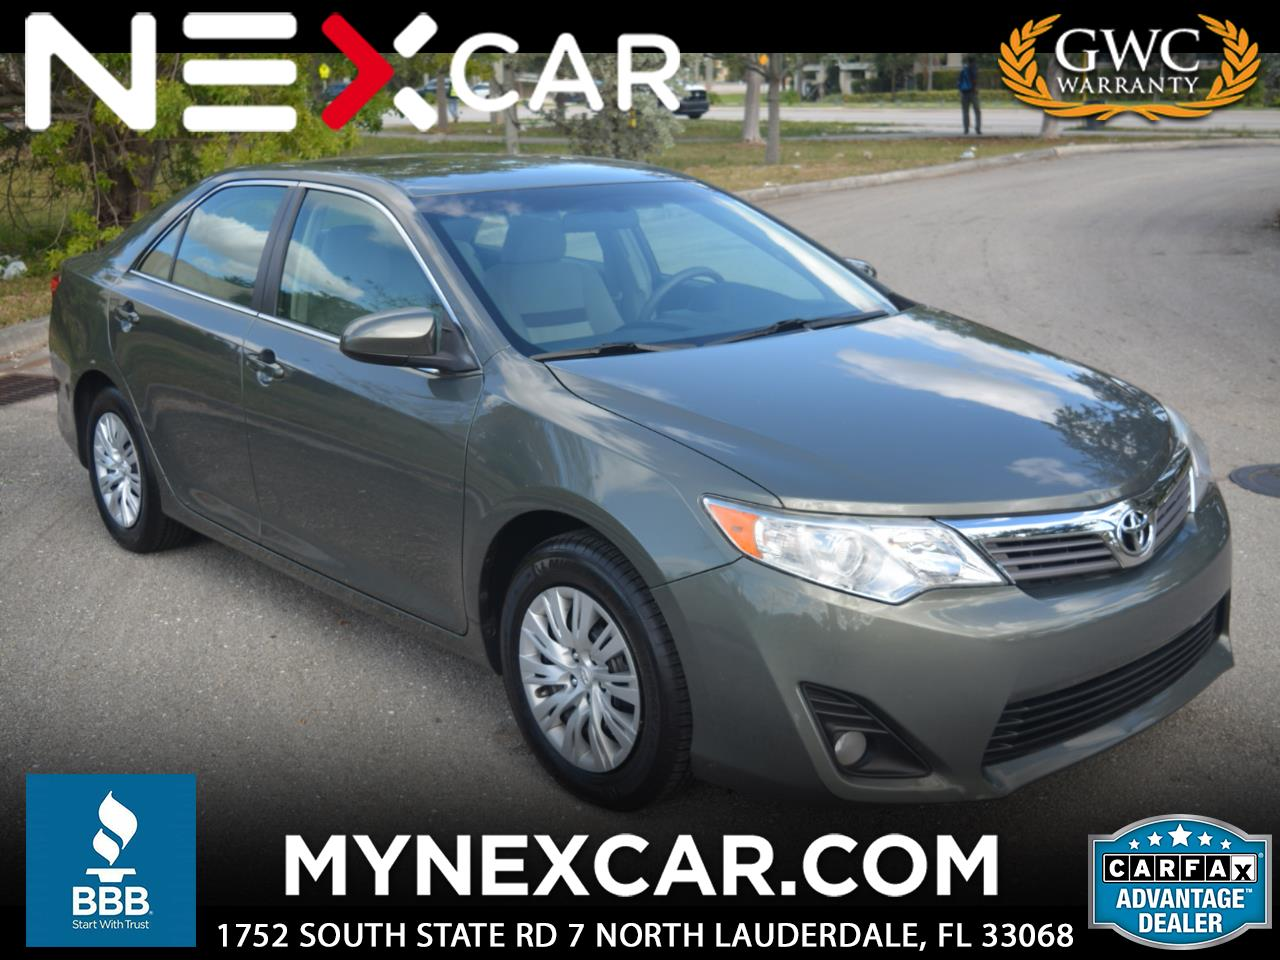 2012 Toyota Camry 4dr Sdn LE Auto (Natl)